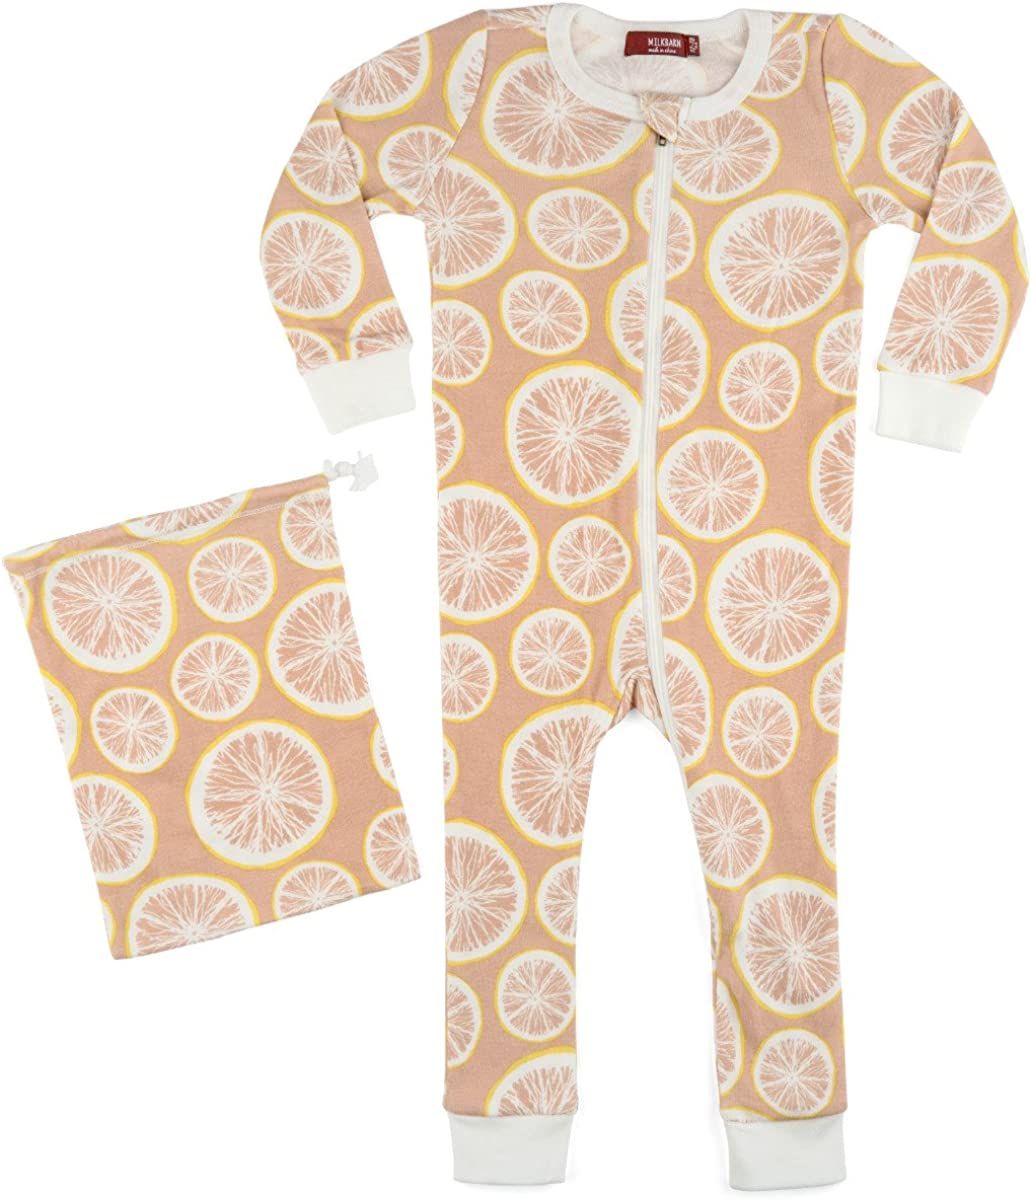 Milkbarn Organic Cotton Zipper Pajama Lemon